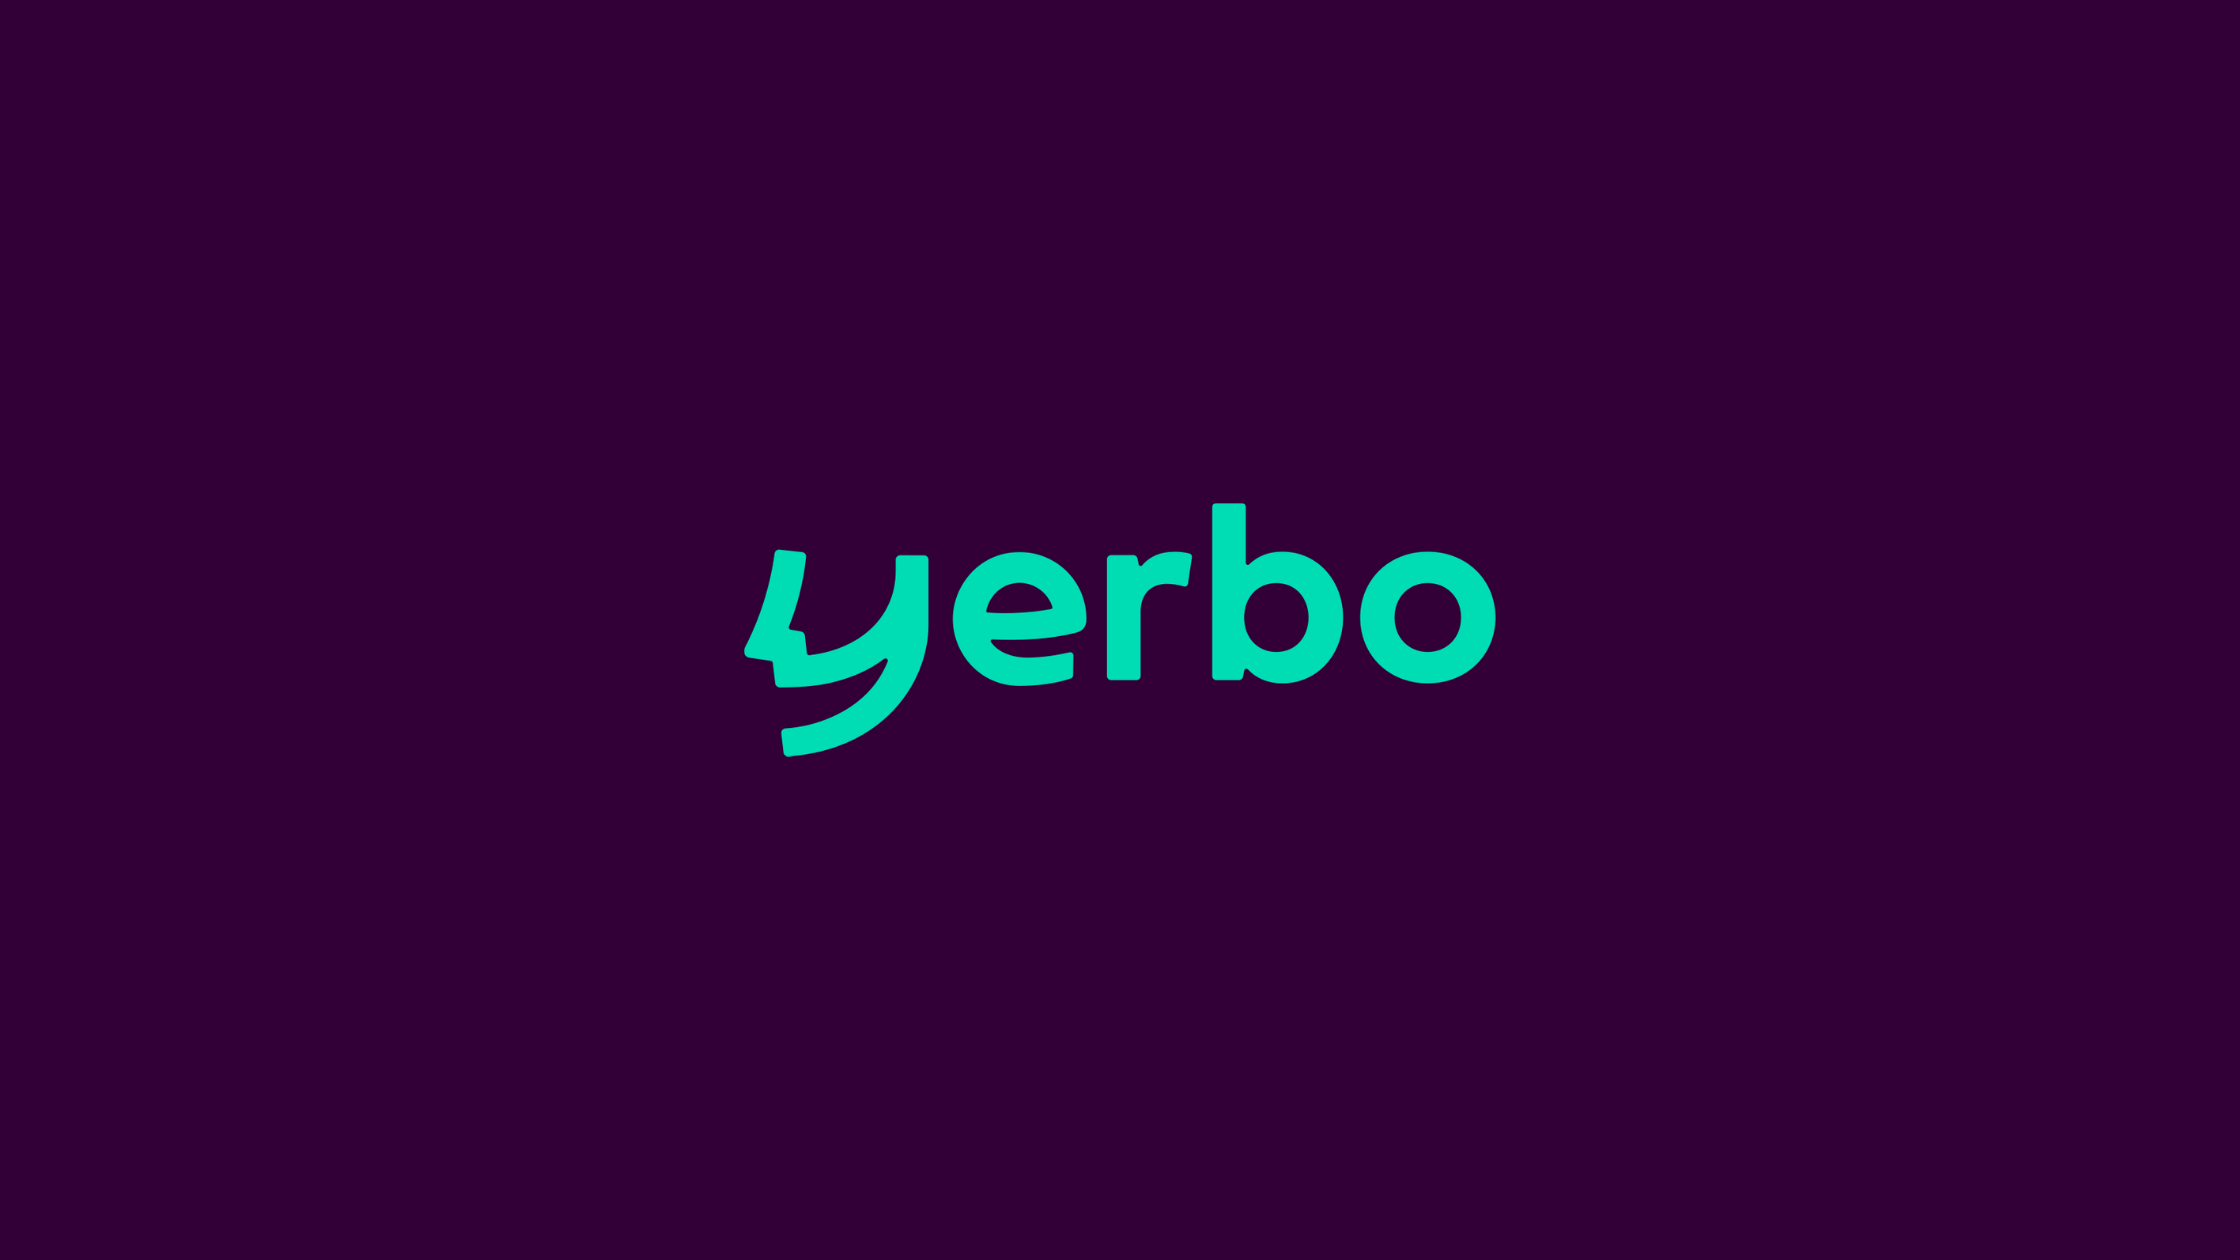 How a rebranding helped our company to focus. Hello Yerbo.